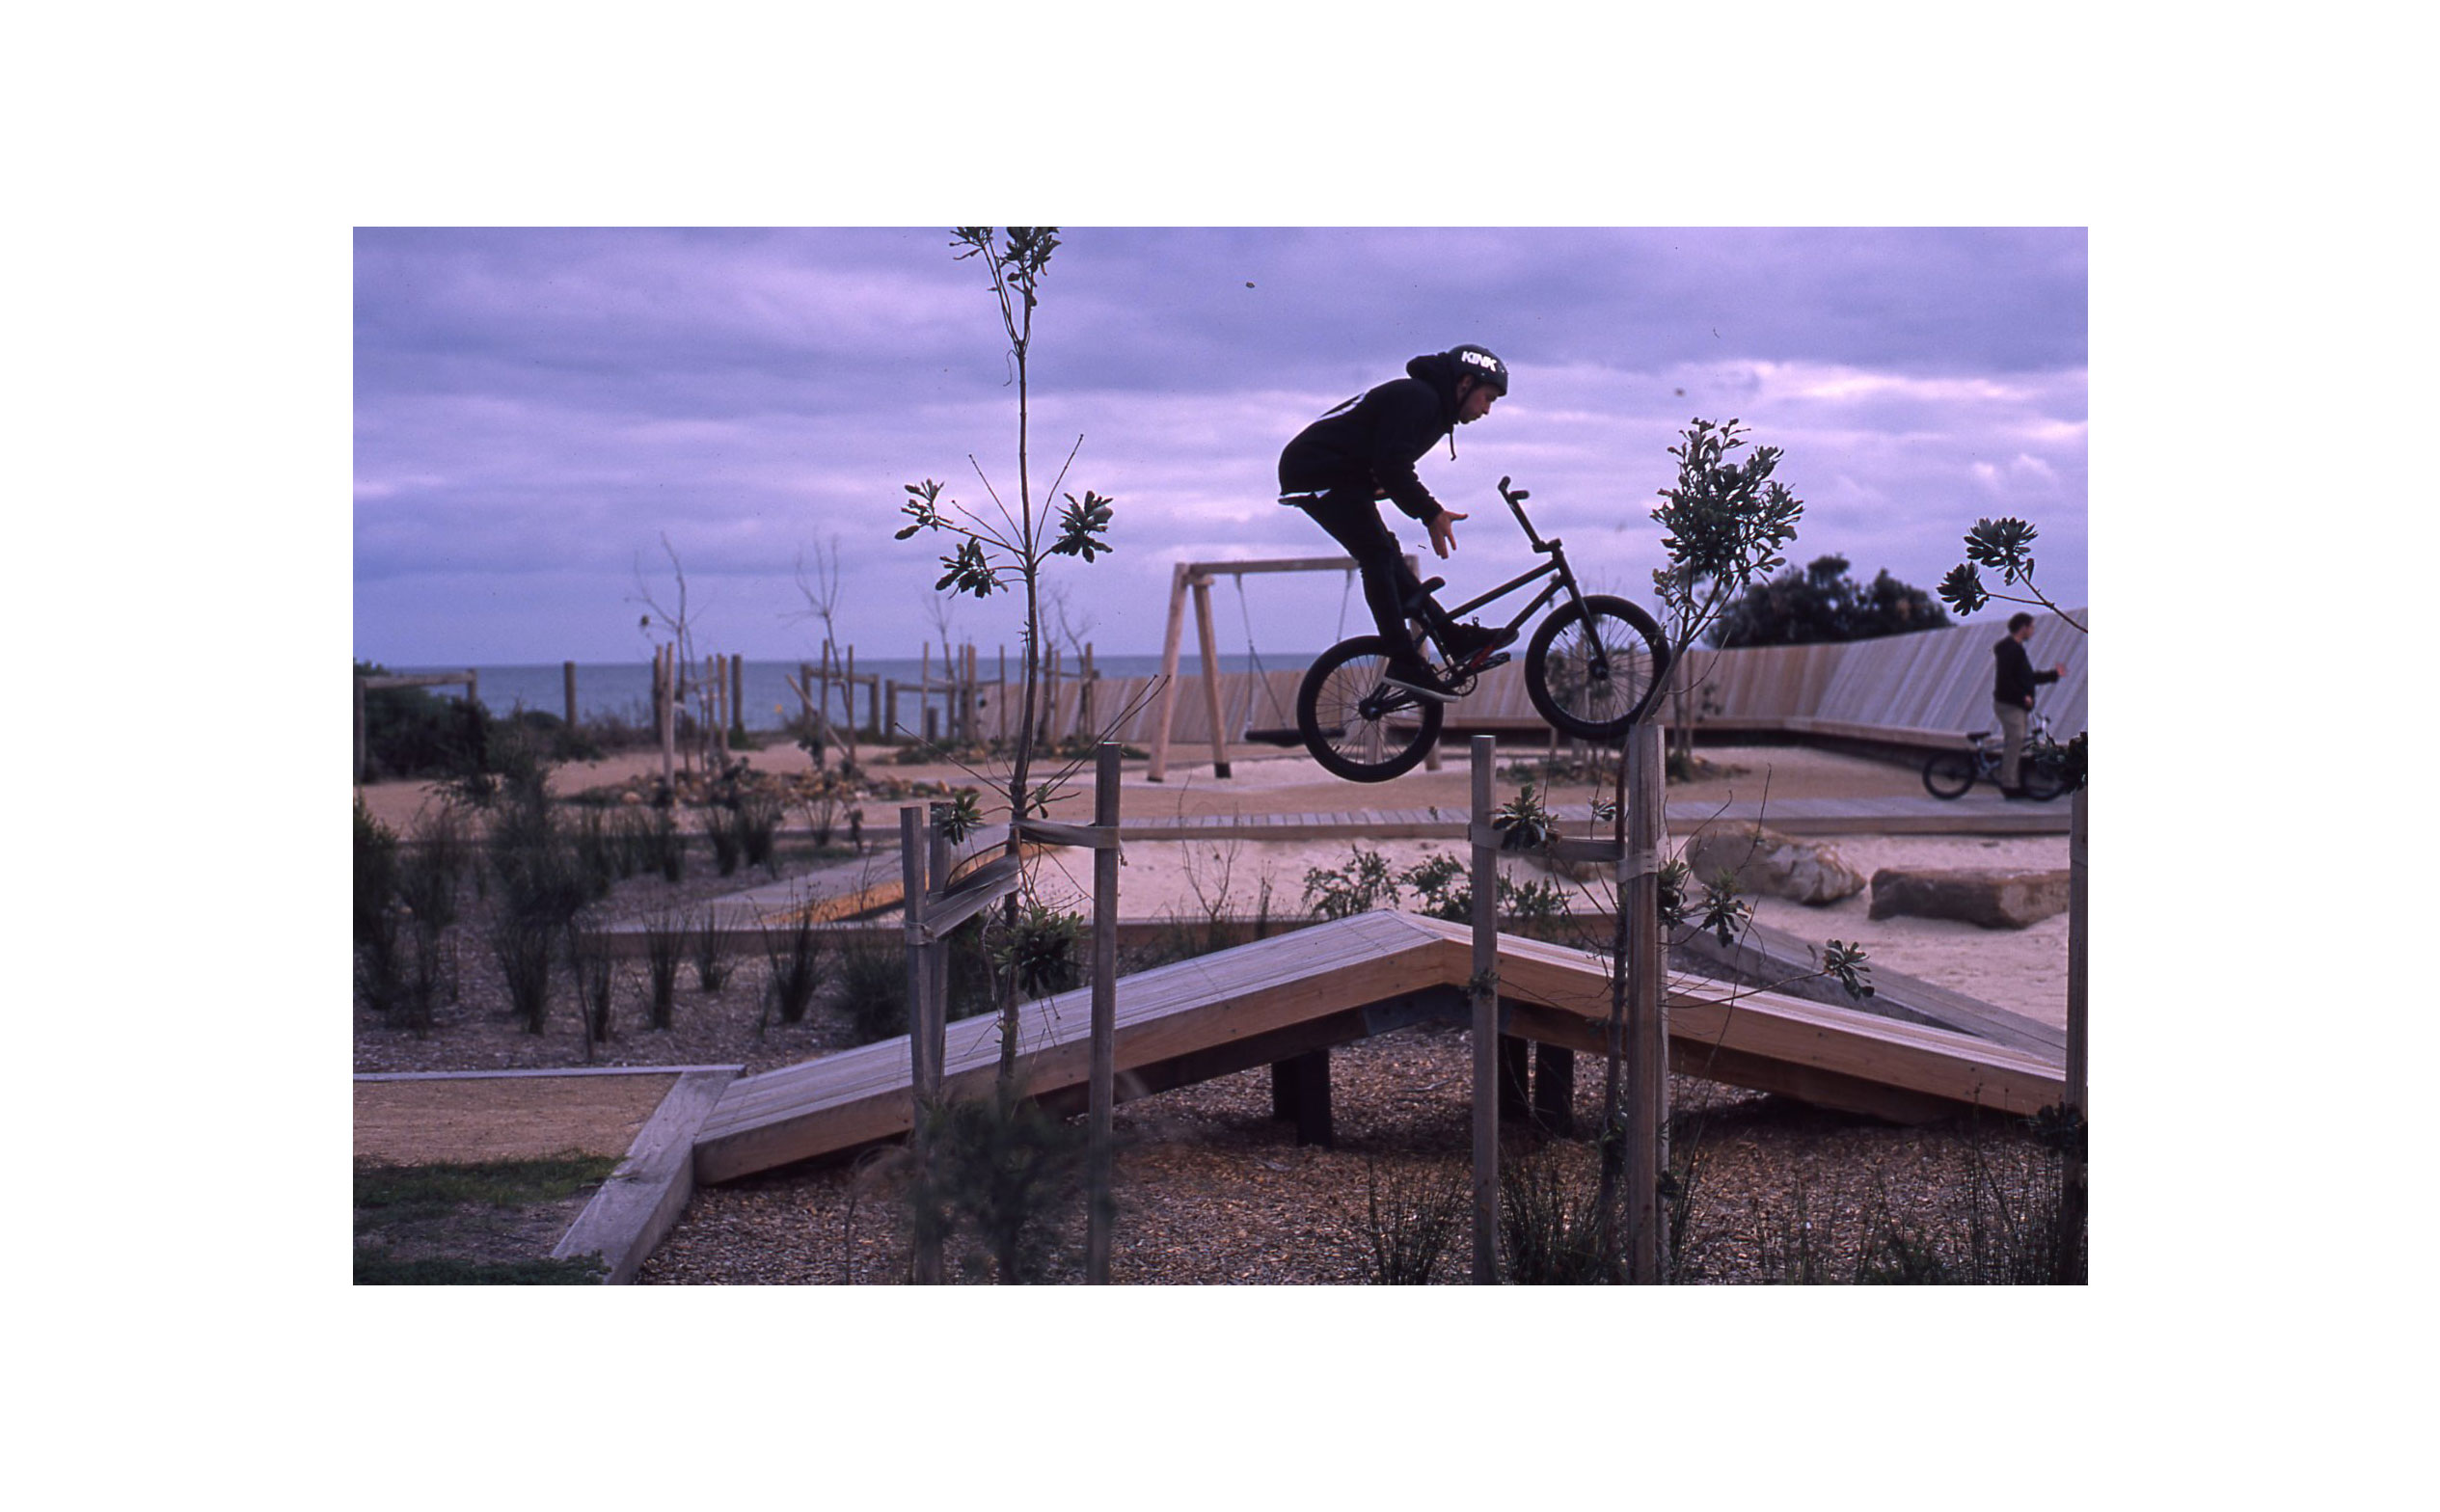 Alex Bolton - Perfectly timed barspin at a picture-perfect playground near the beach.